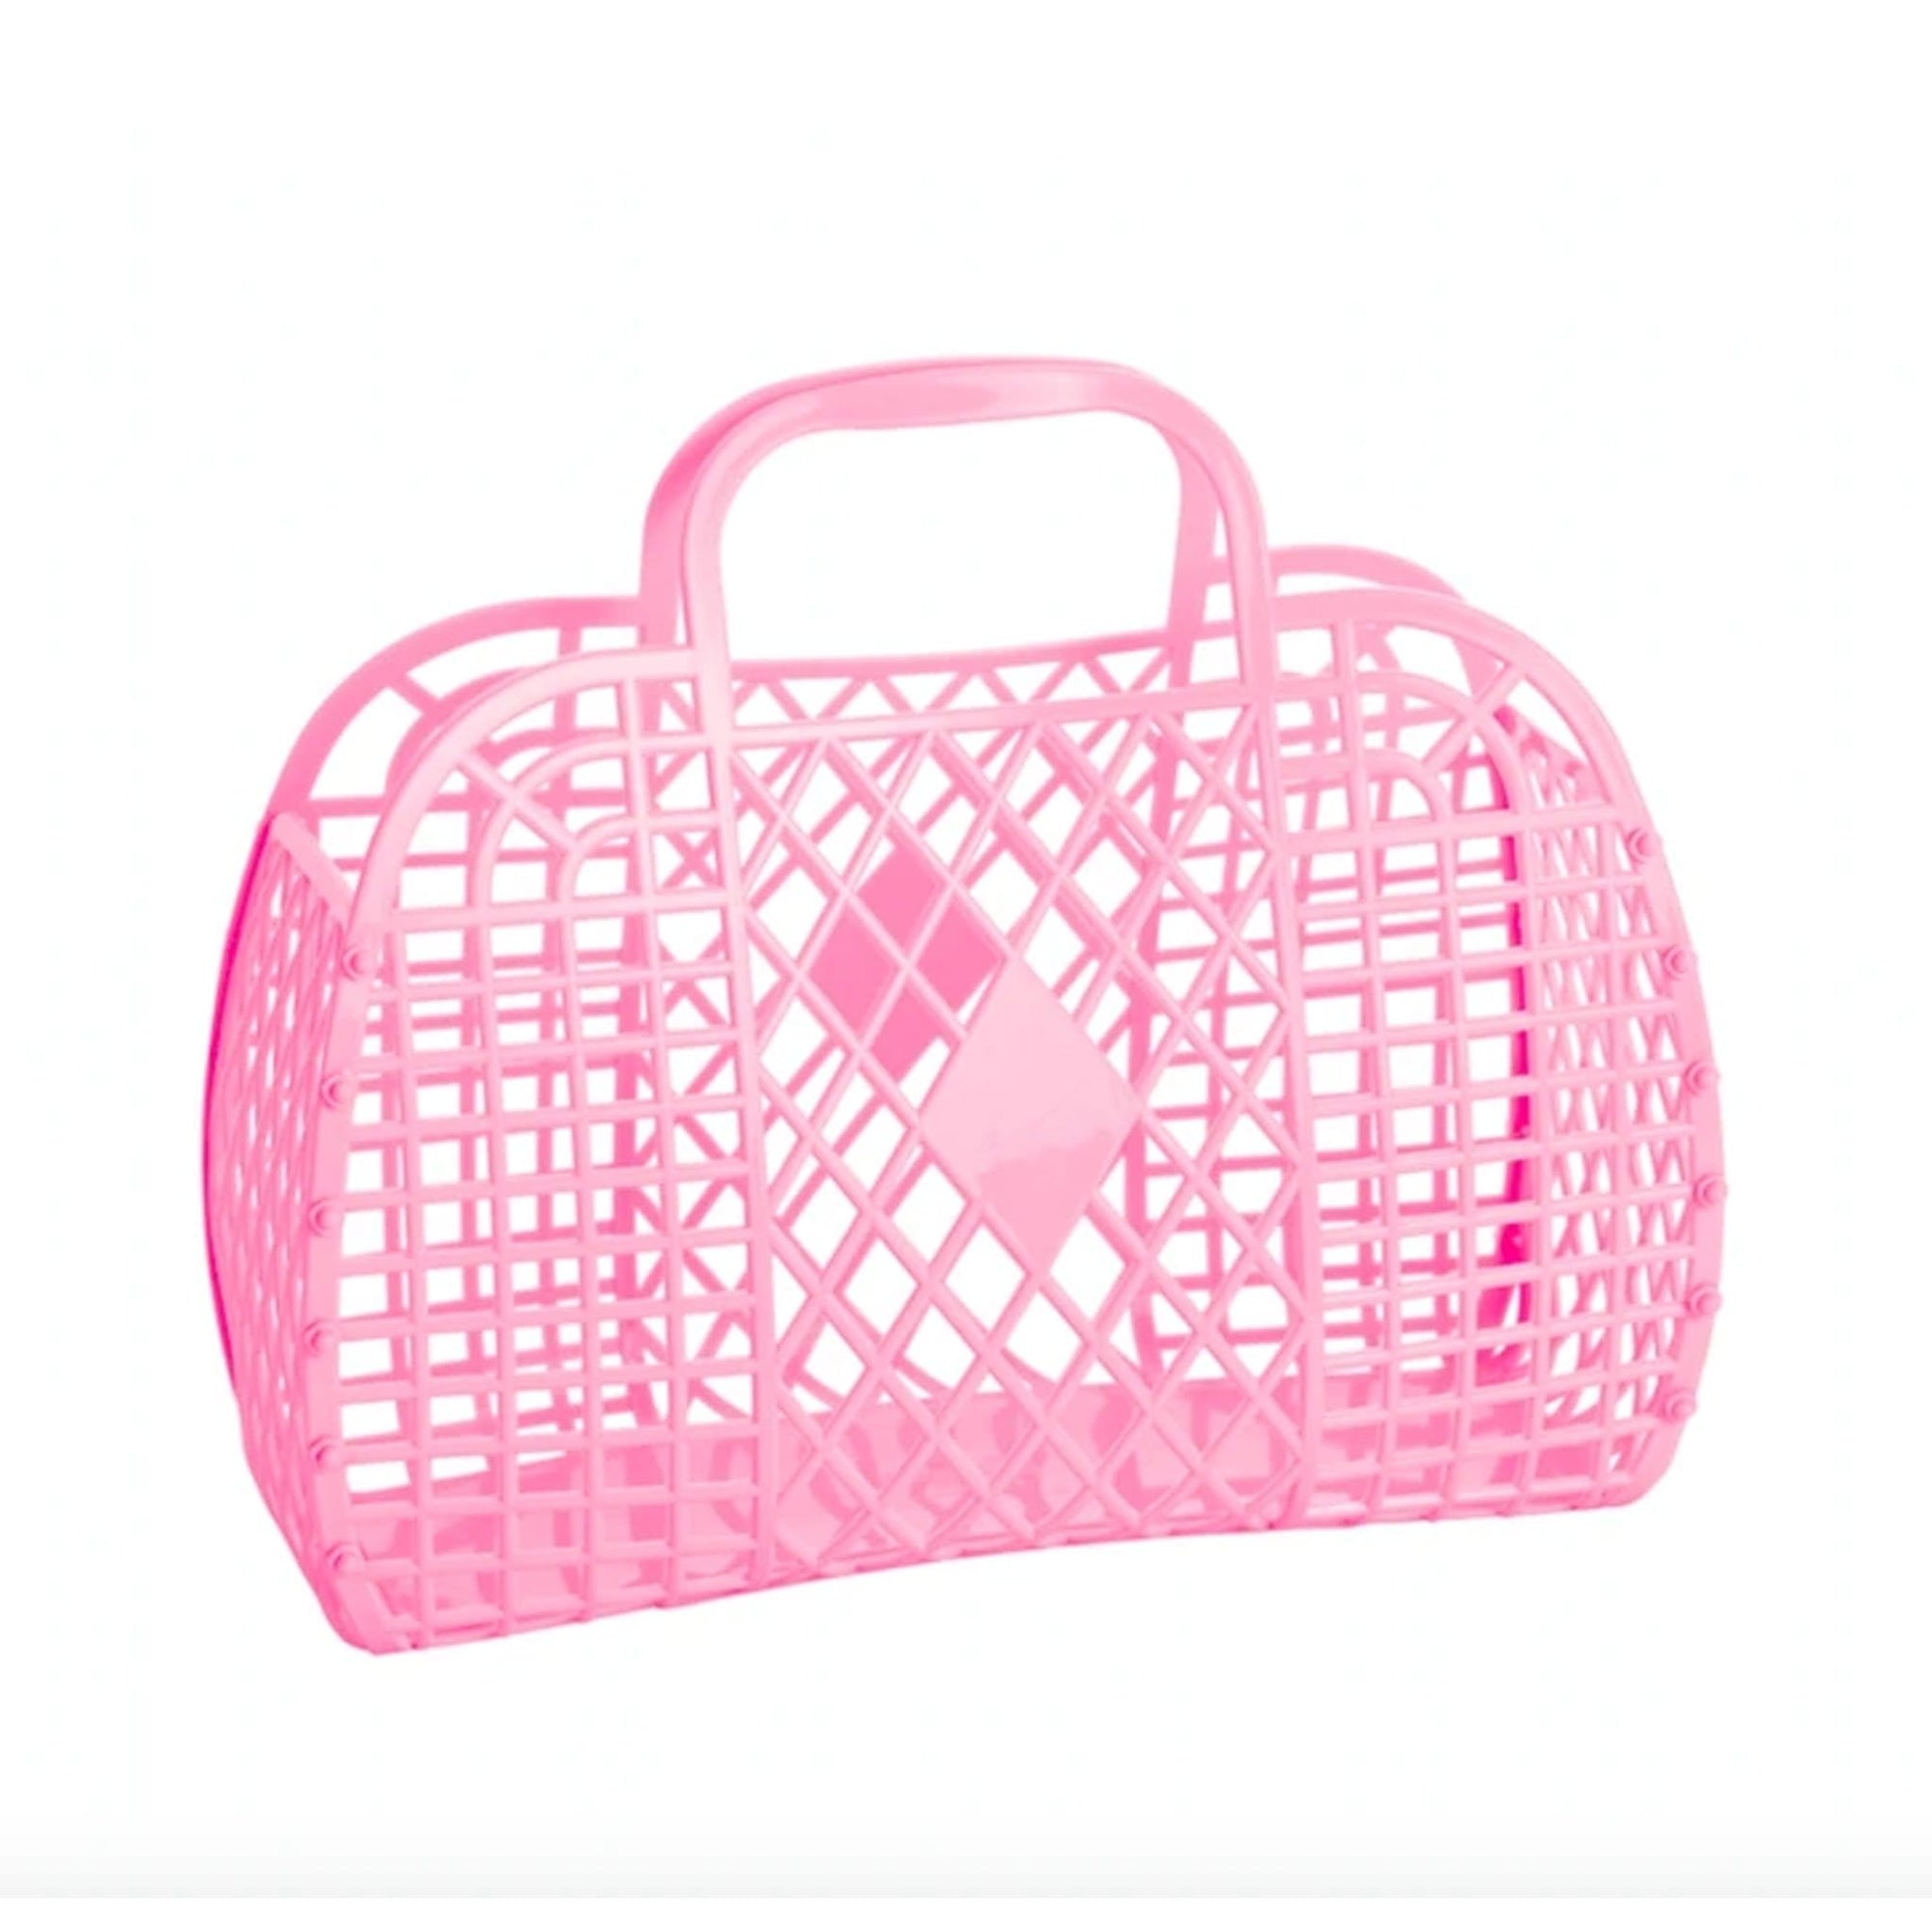 Sun Jellies Retro Basket Bubblegum Pink - Small